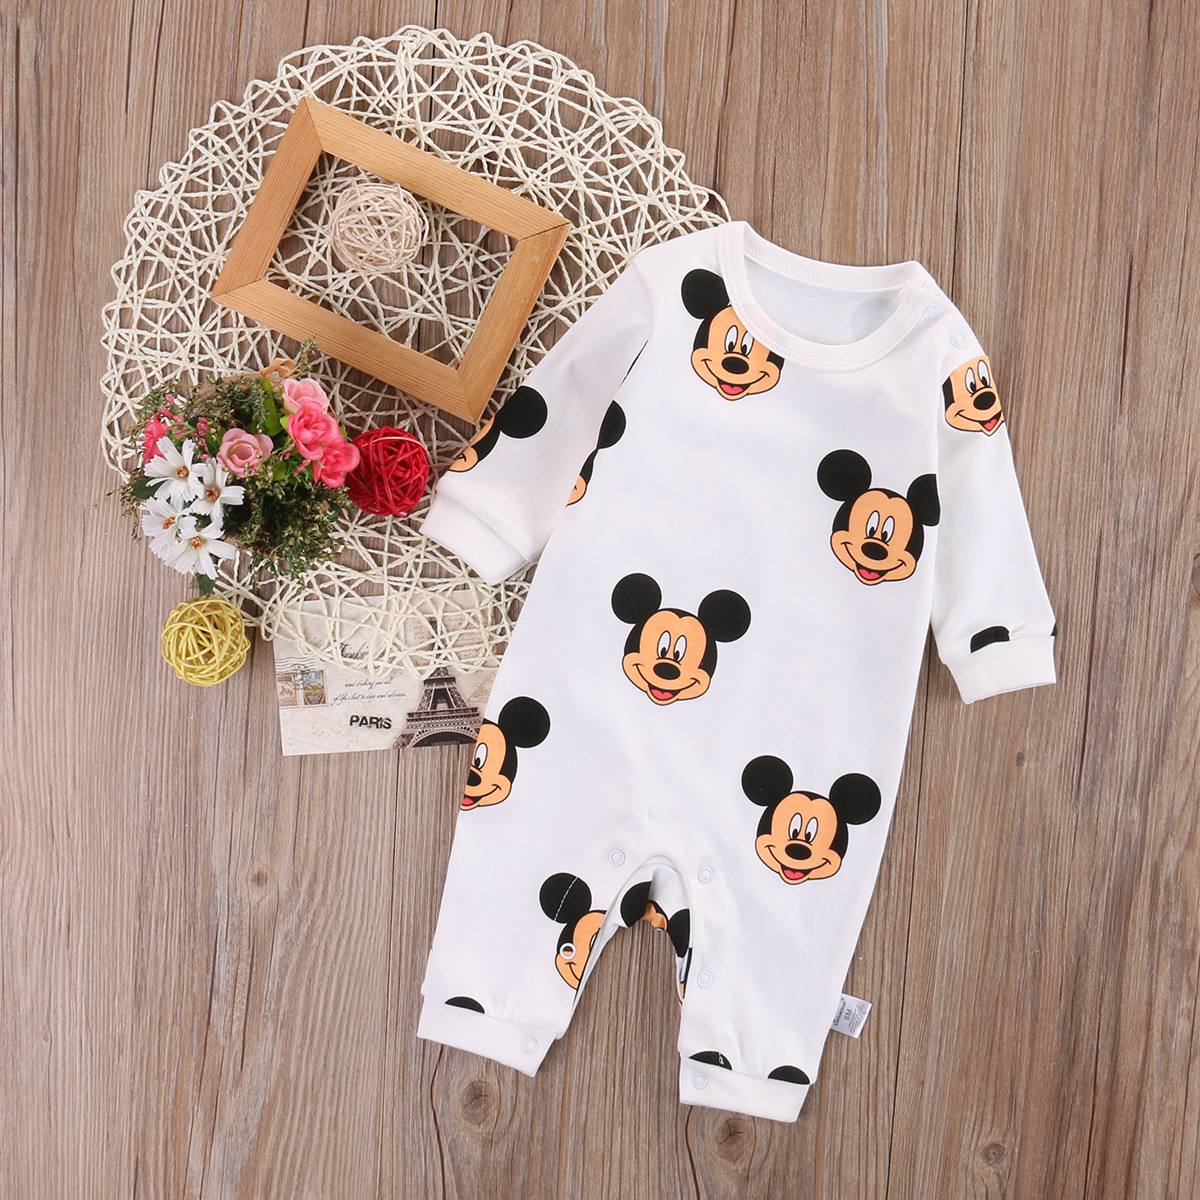 Newborn Infant Baby Boy Girls Jumpsuit Bodysuit Outfit Clothes Set fashion 2pcs set newborn baby girls jumpsuit toddler girls flower pattern outfit clothes romper bodysuit pants